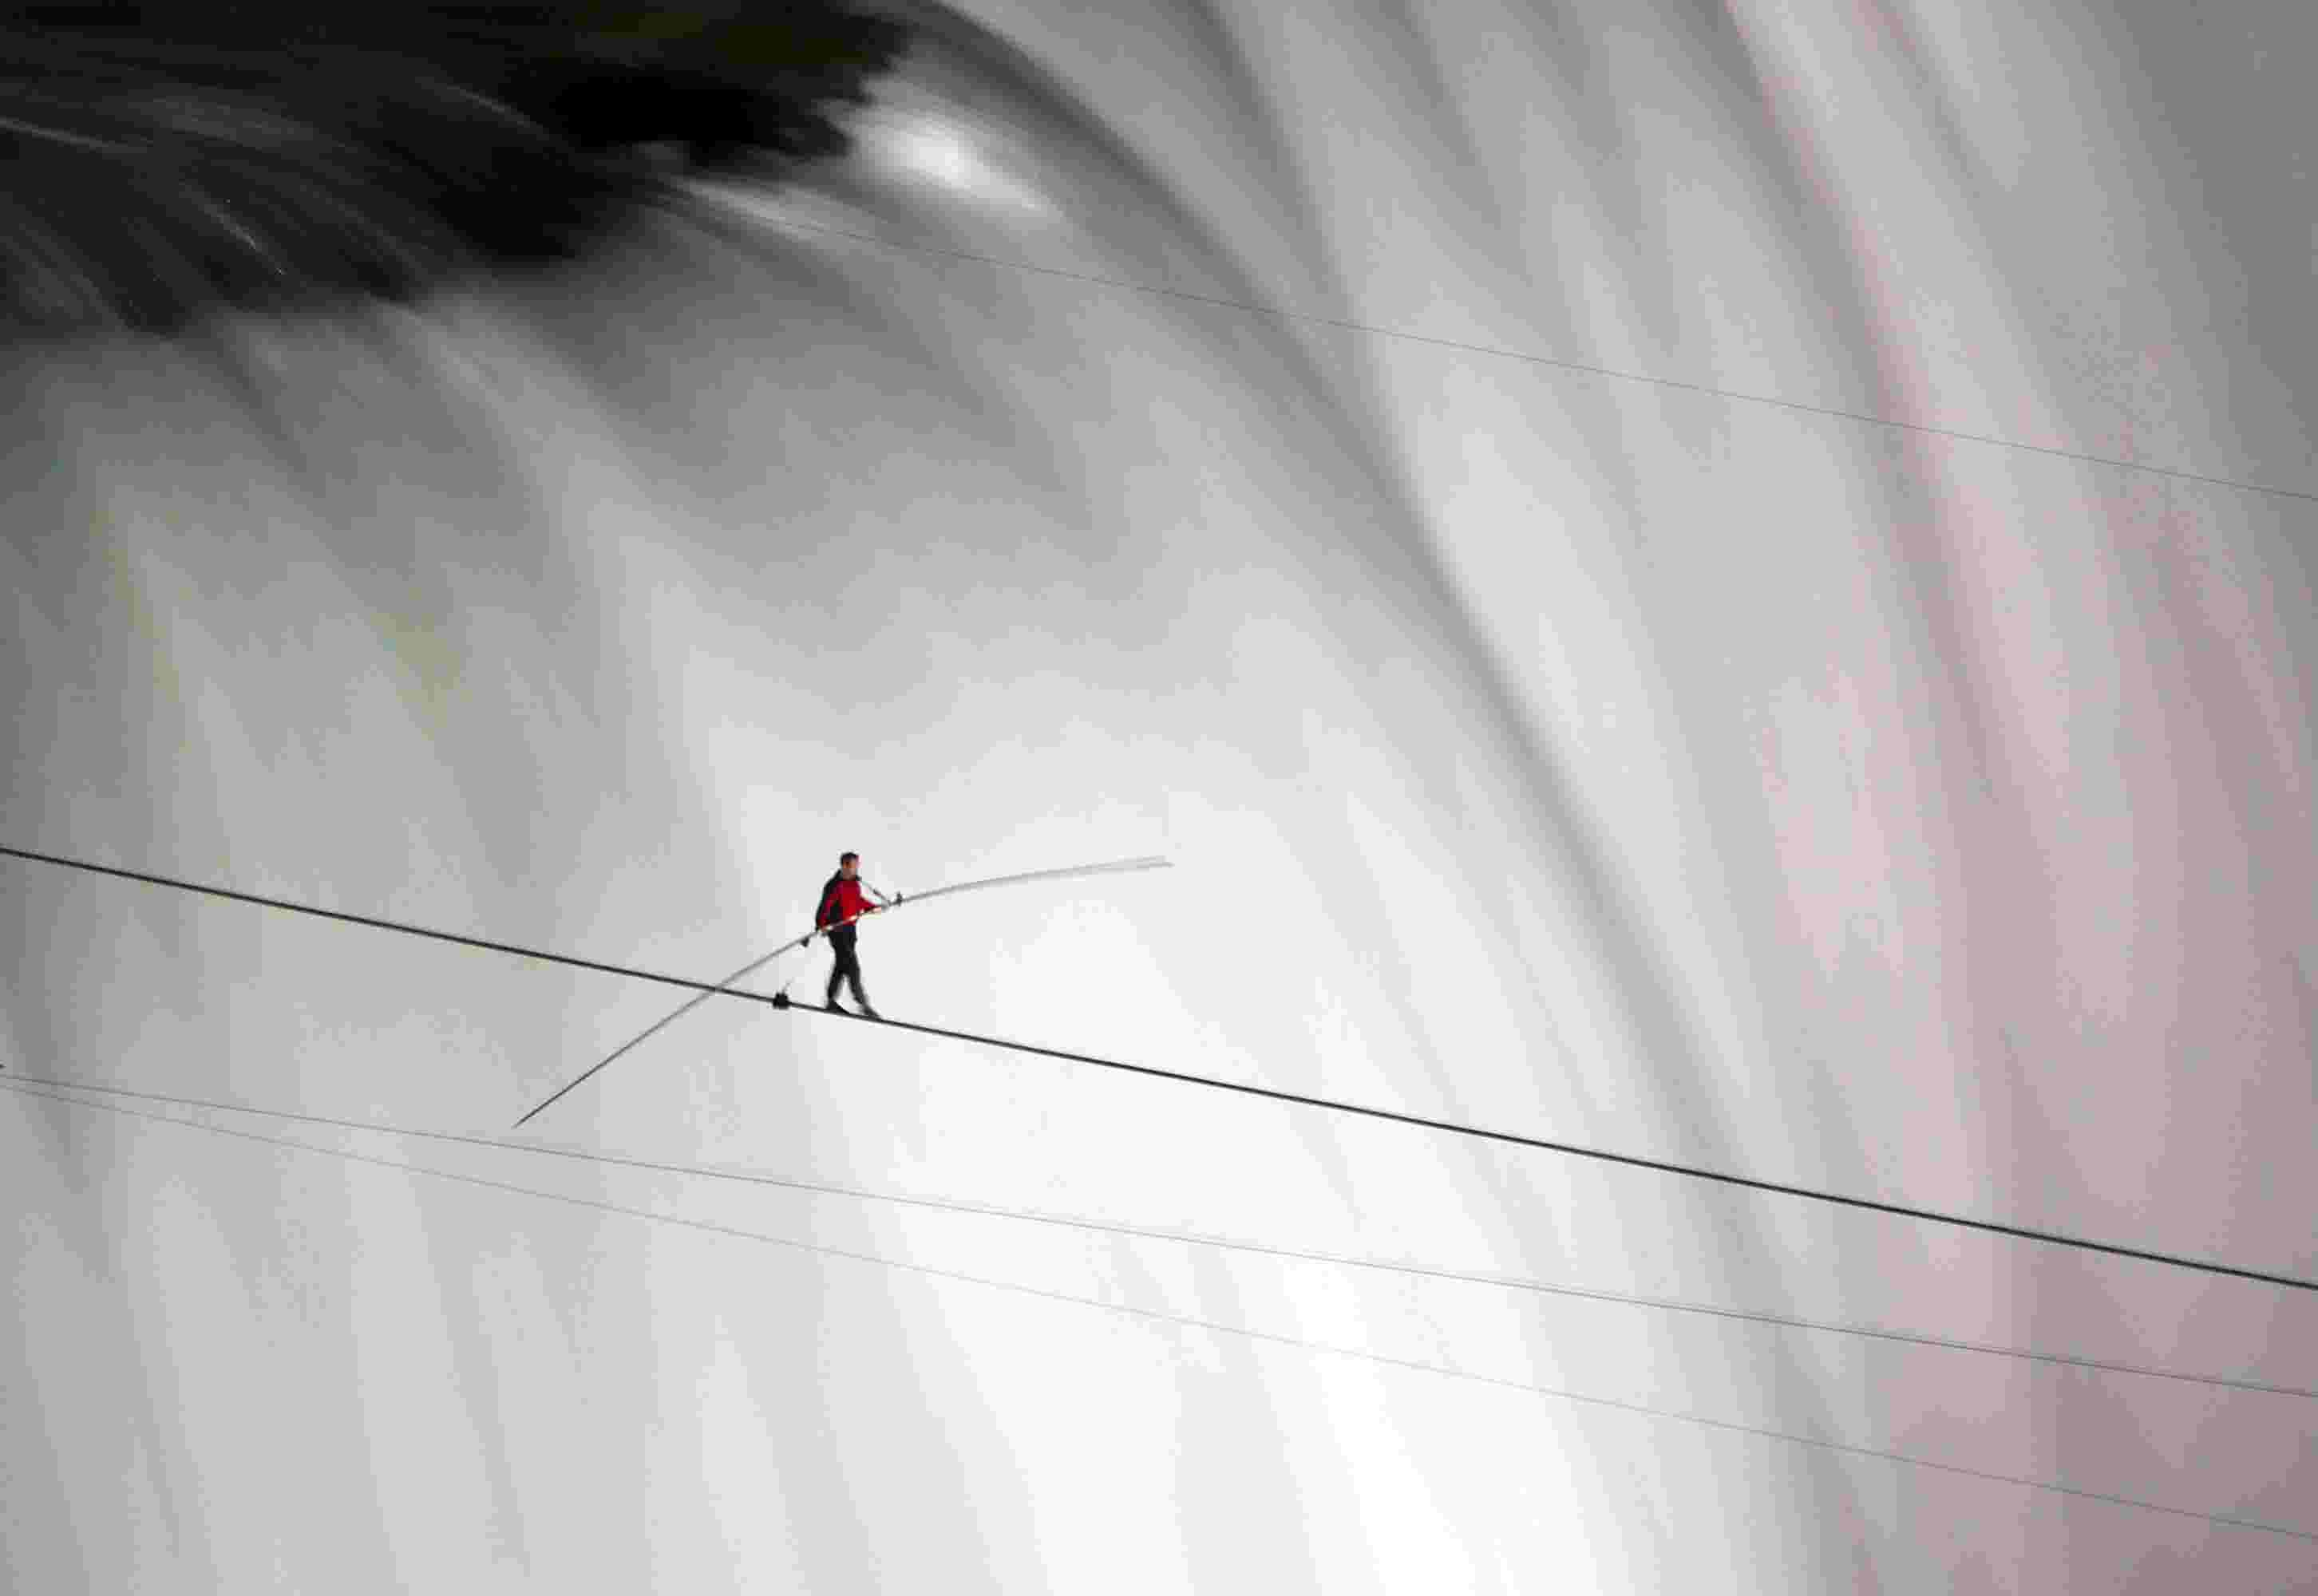 Wallendas among 5 tightrope walkers injured in fall